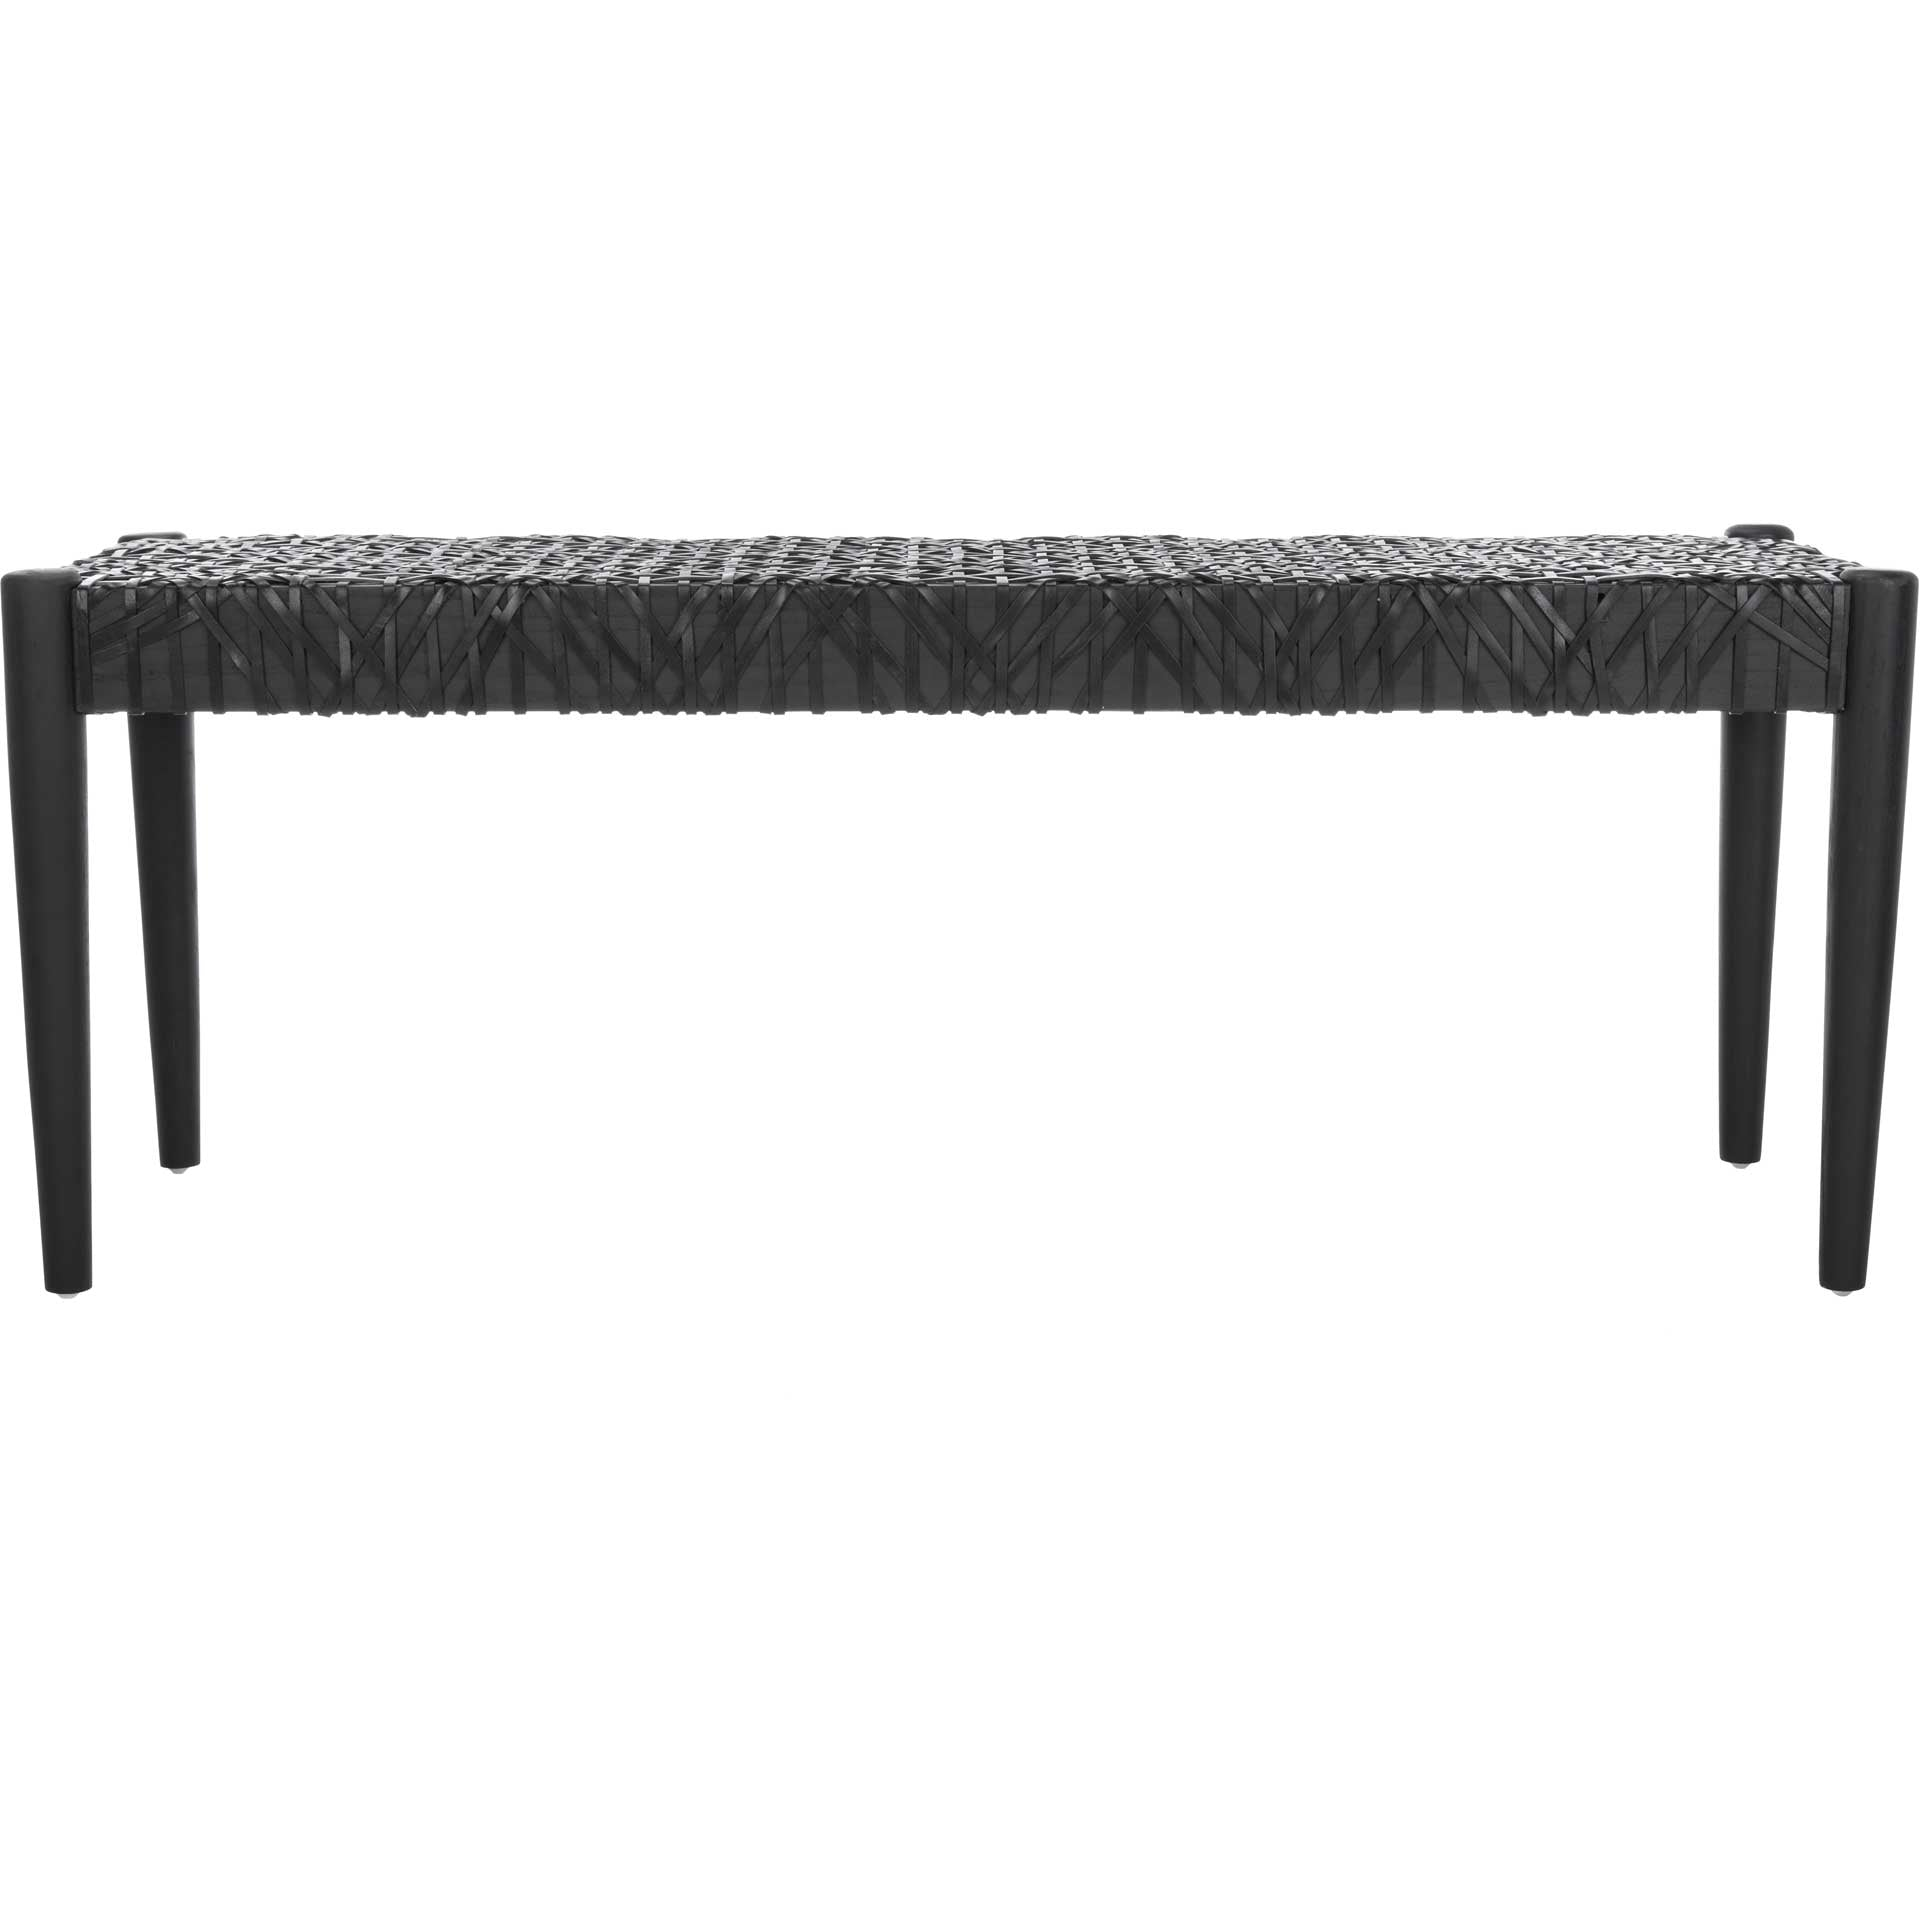 Baize Leather Weave Bench Black/Black